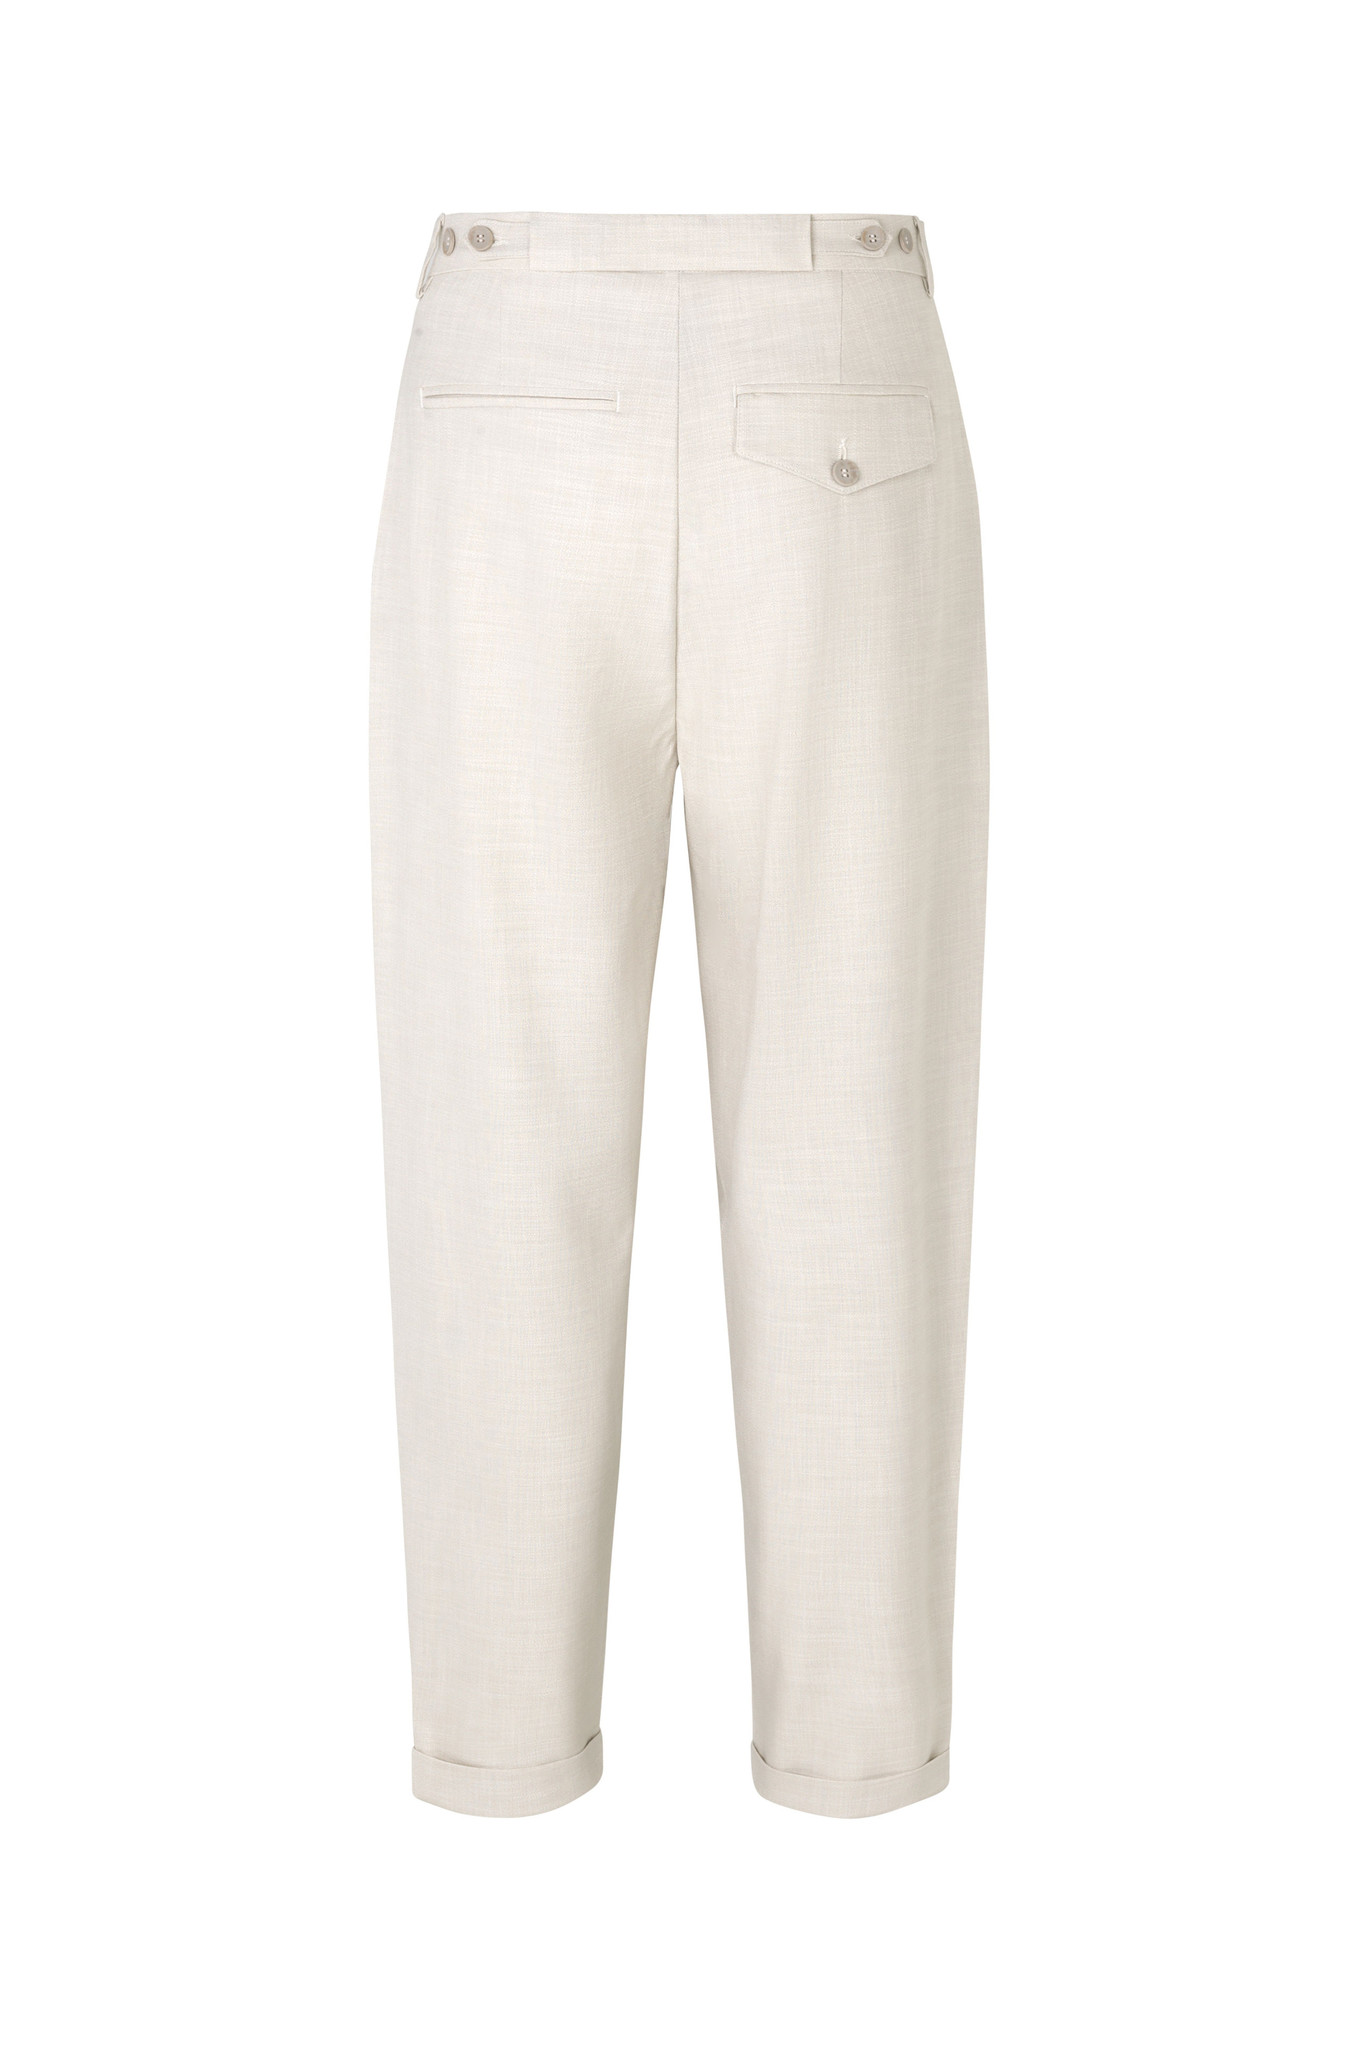 Malou Slash 396 Trouser - Moonbeam Melange-6